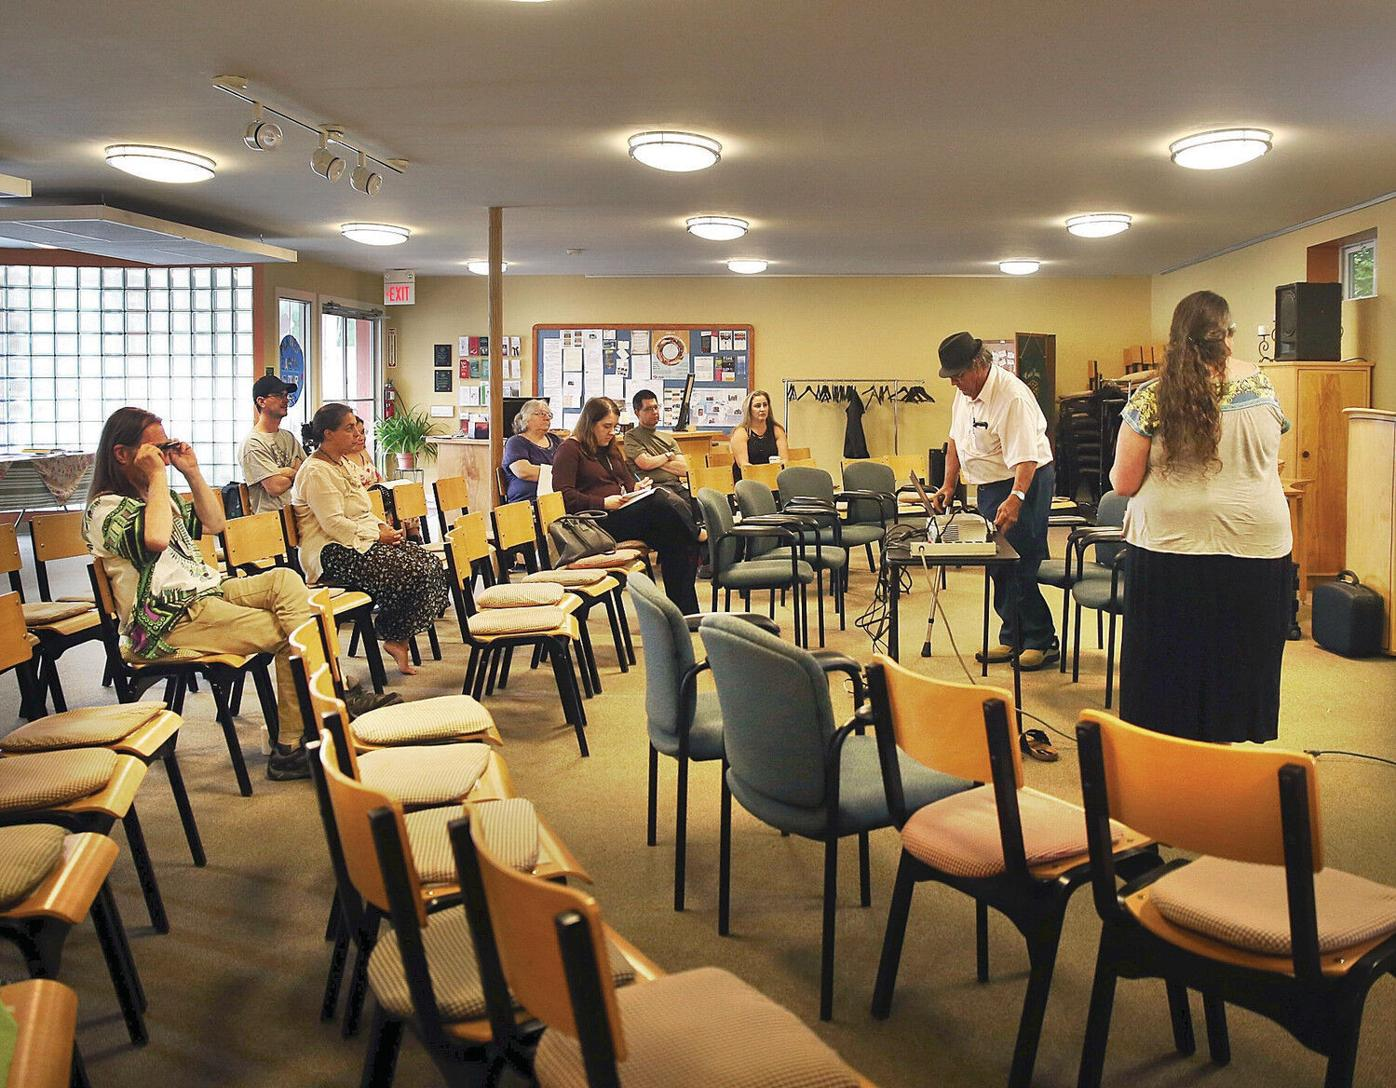 Disability rights training focuses on the law and access